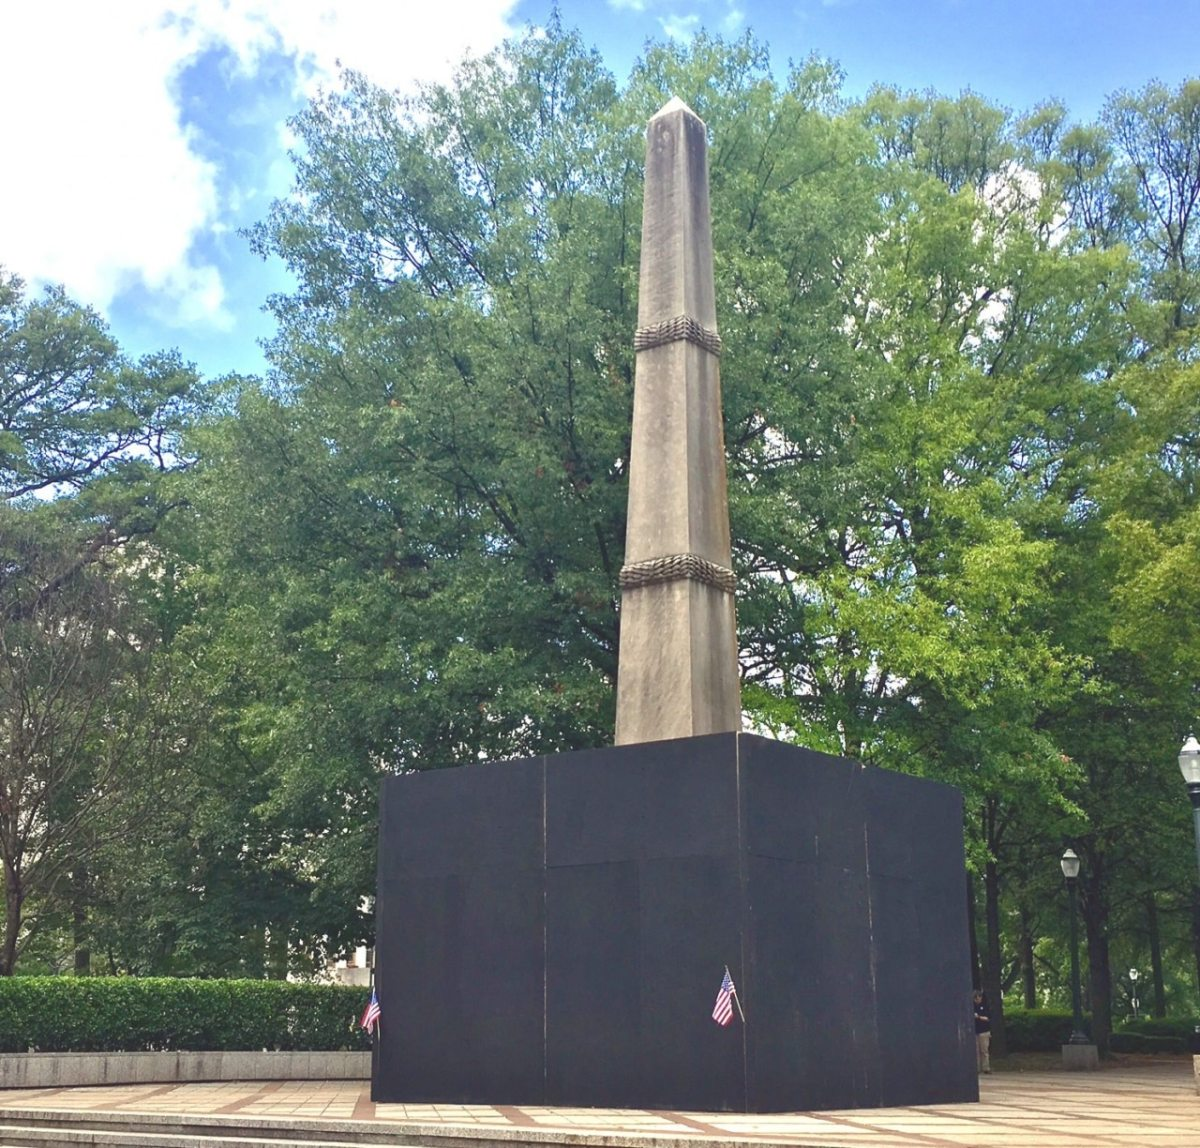 Take our poll!  What do you think should happen to the monument?